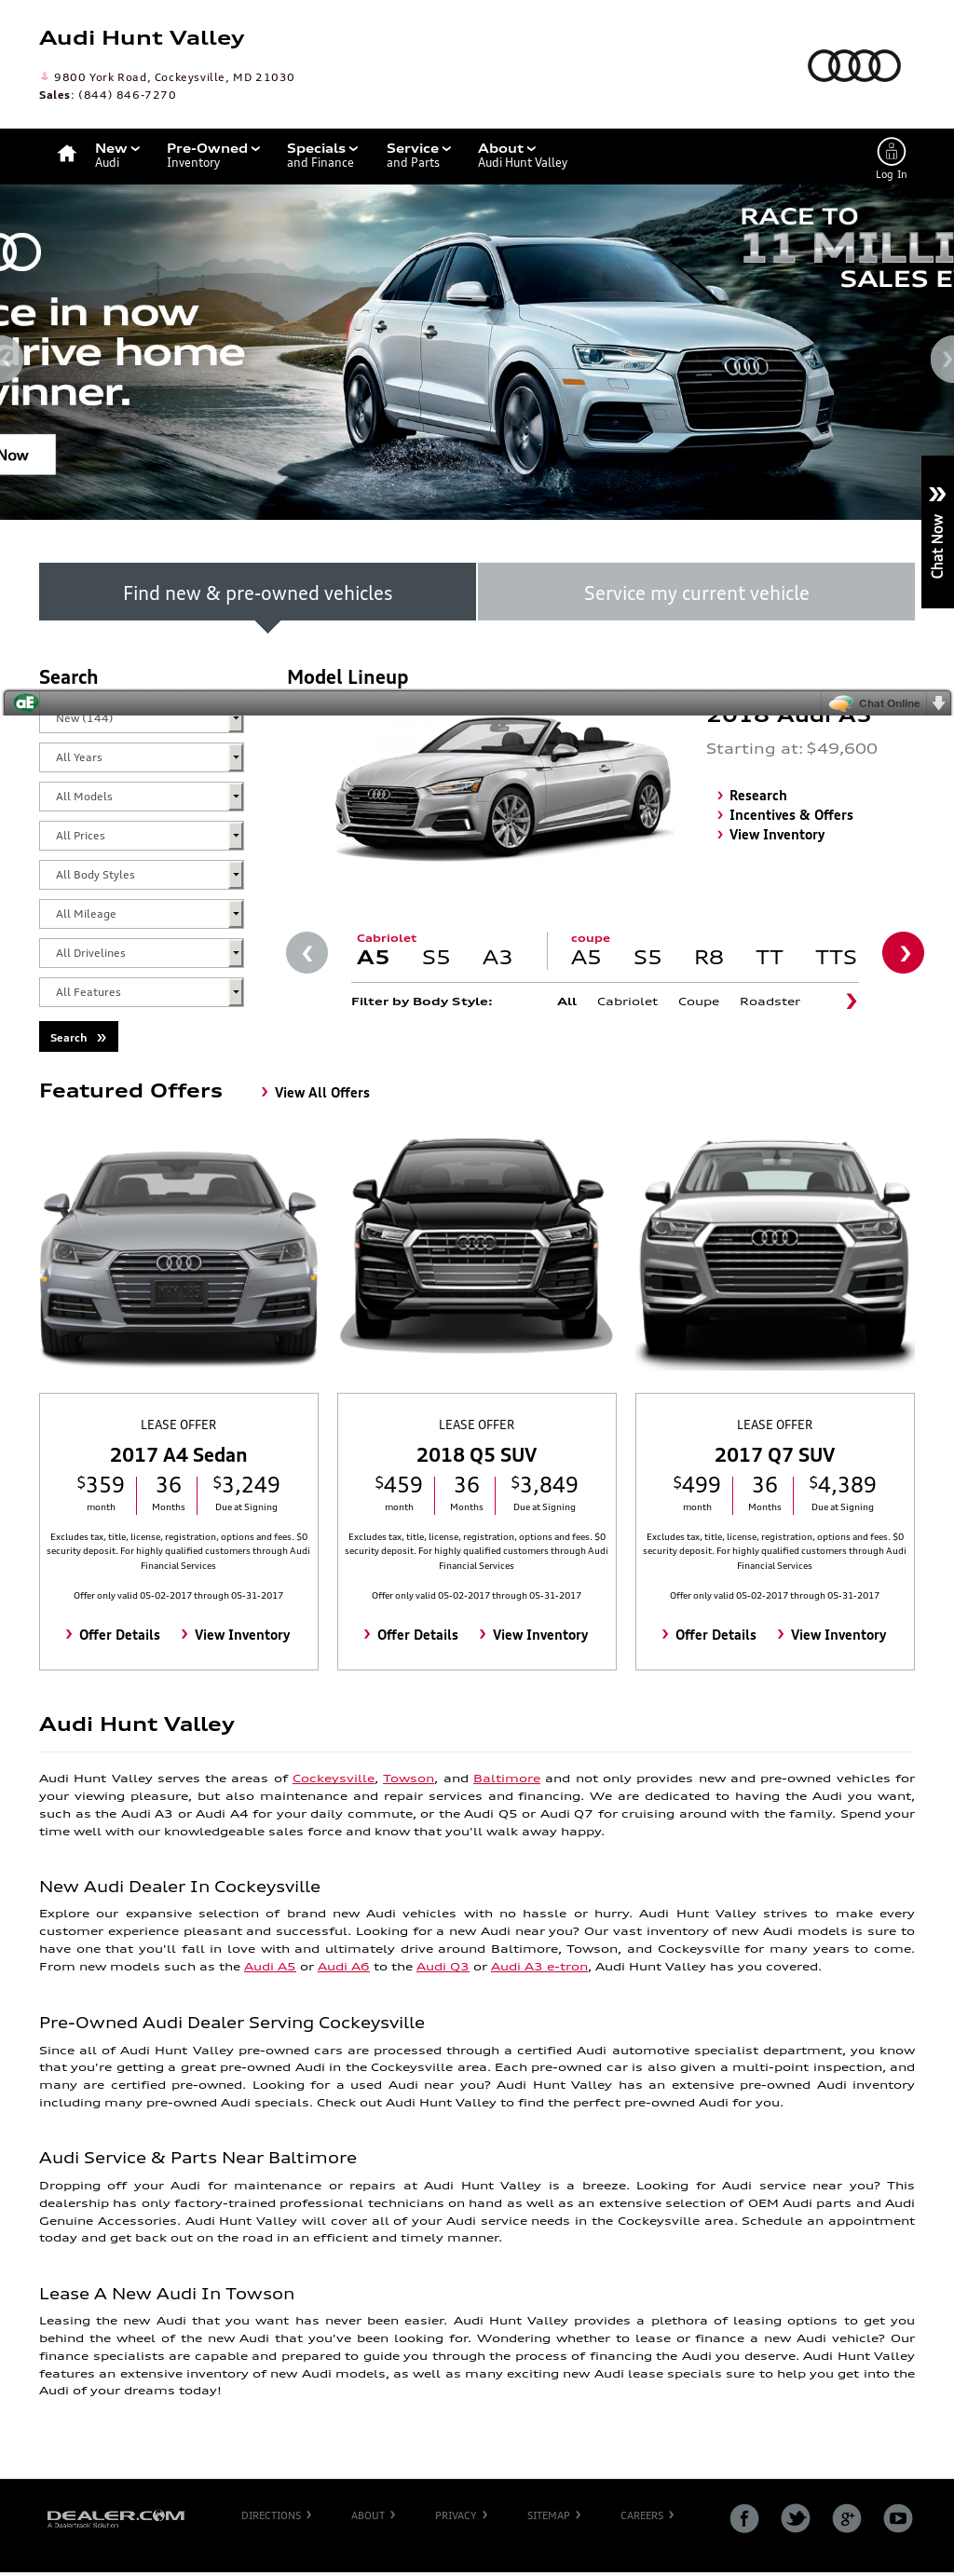 Audi Hunt Valley New Audi And Used Car Dealer In Cockeysville - Audi hunt valley